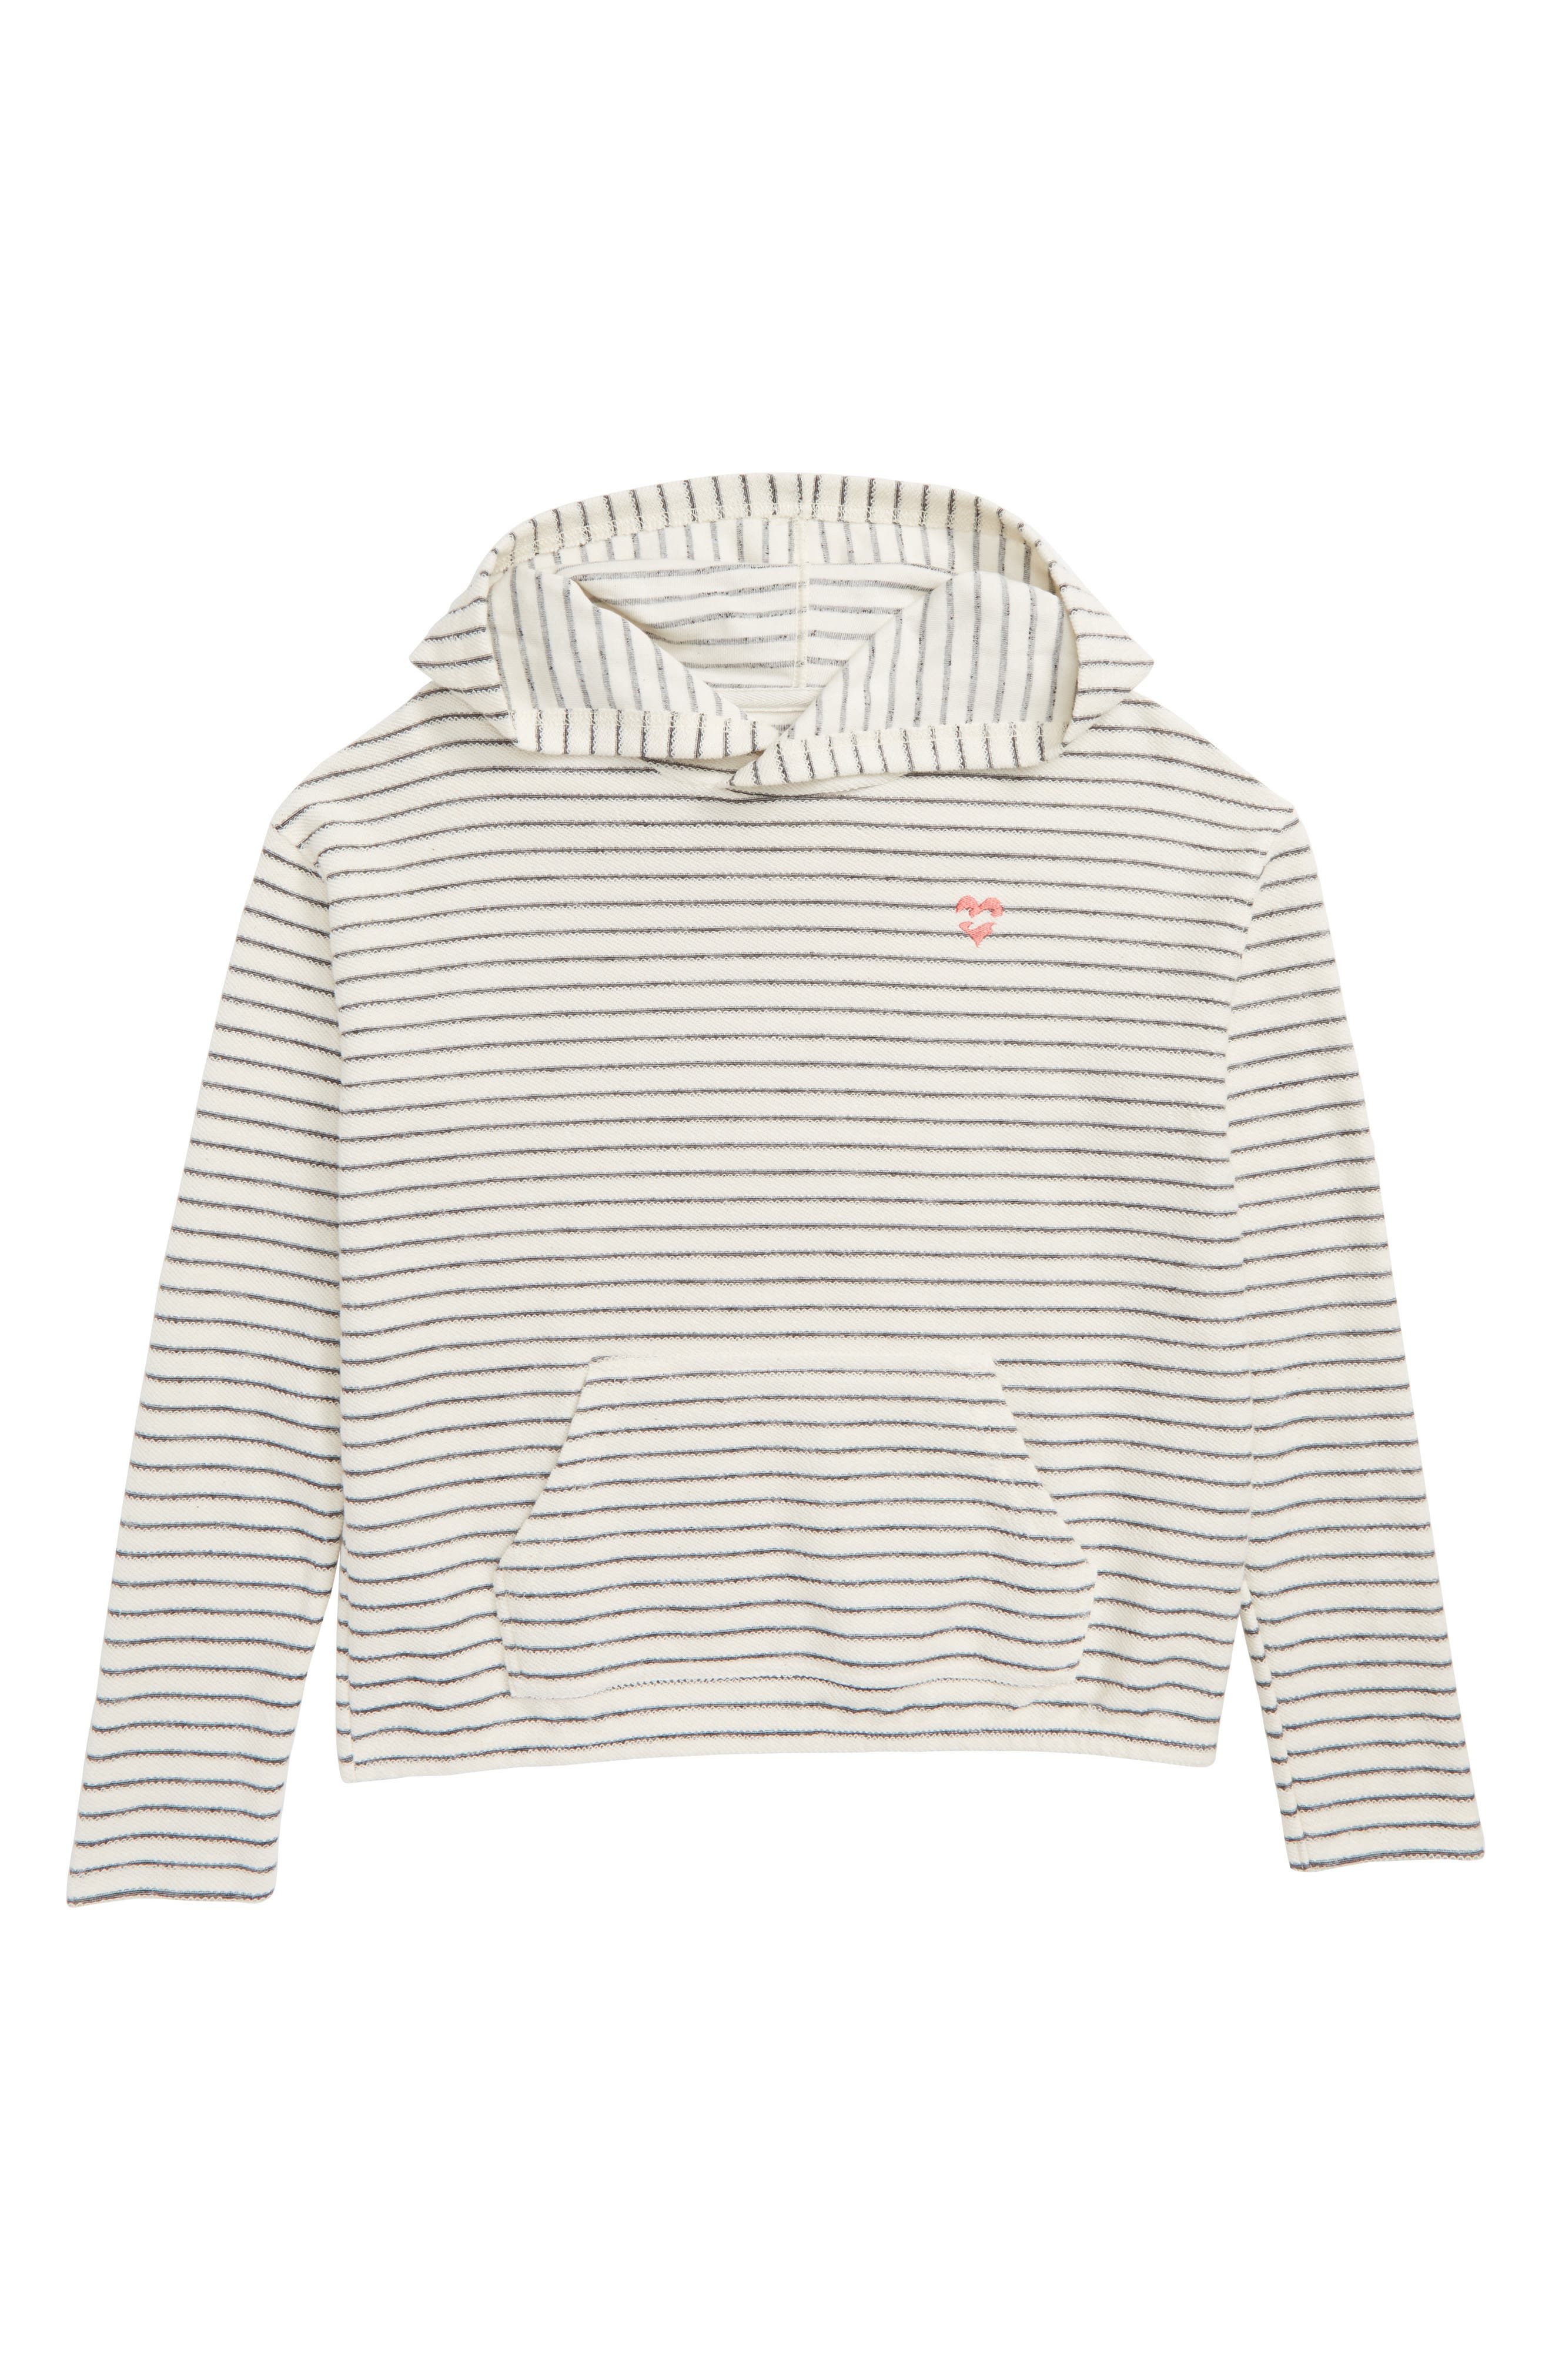 Friday Feeling Stripe Hoodie,                             Main thumbnail 1, color,                             900